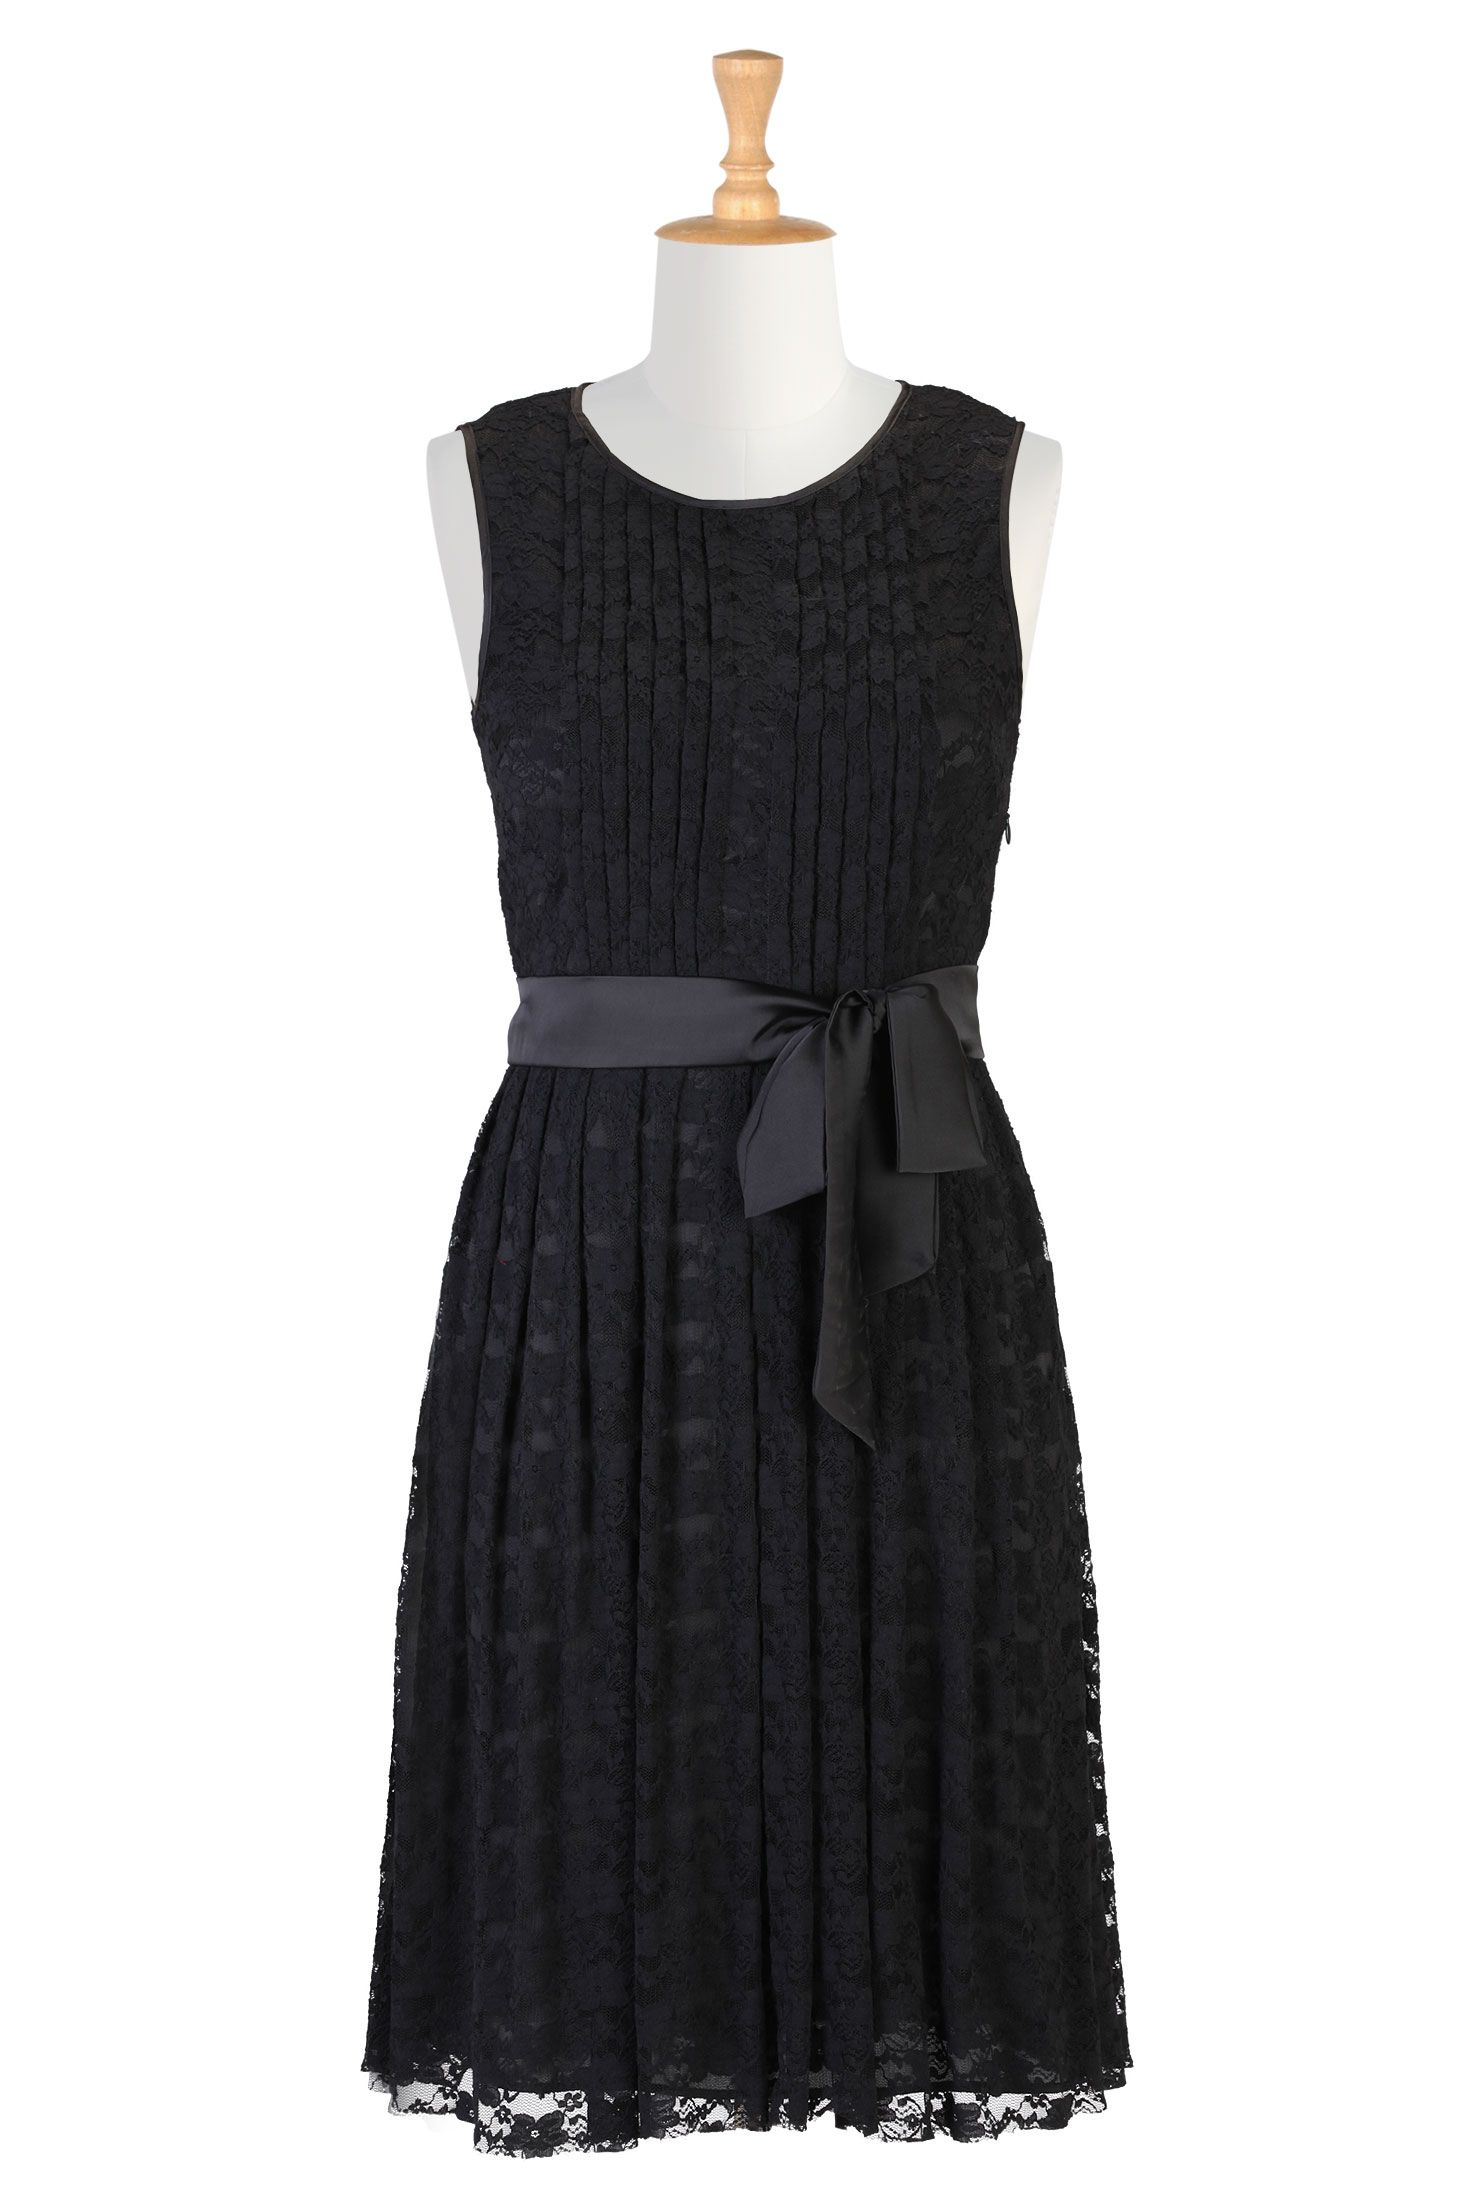 Sash tied floral lace dress pinterest black bridesmaids lbd and